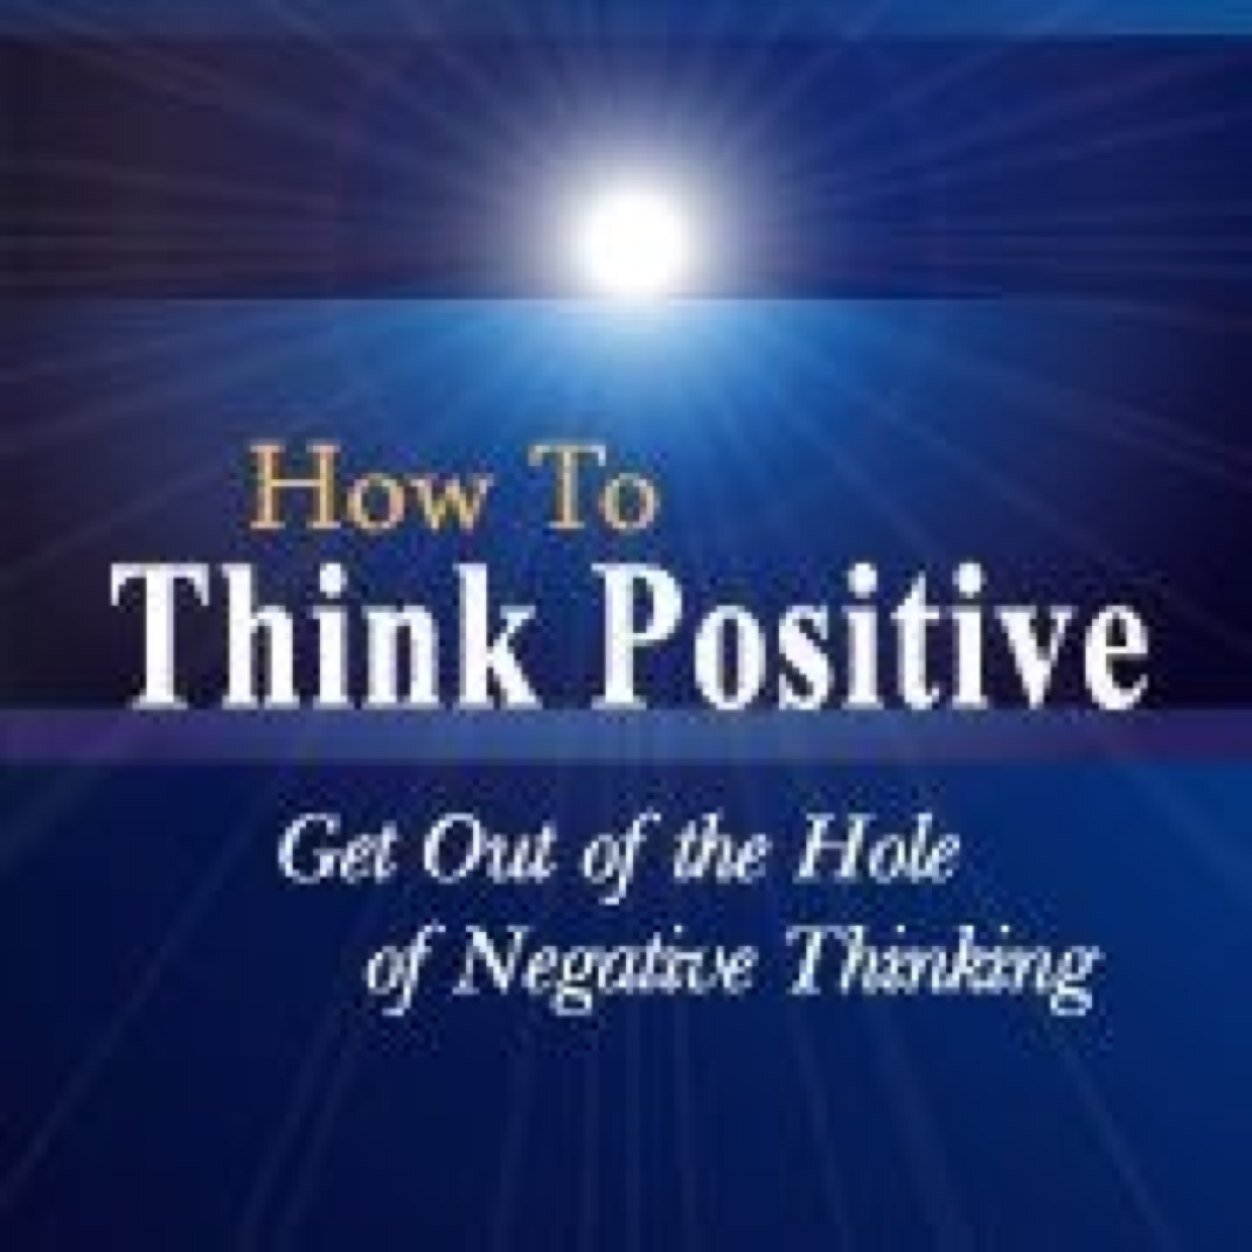 HowToThinkPositive